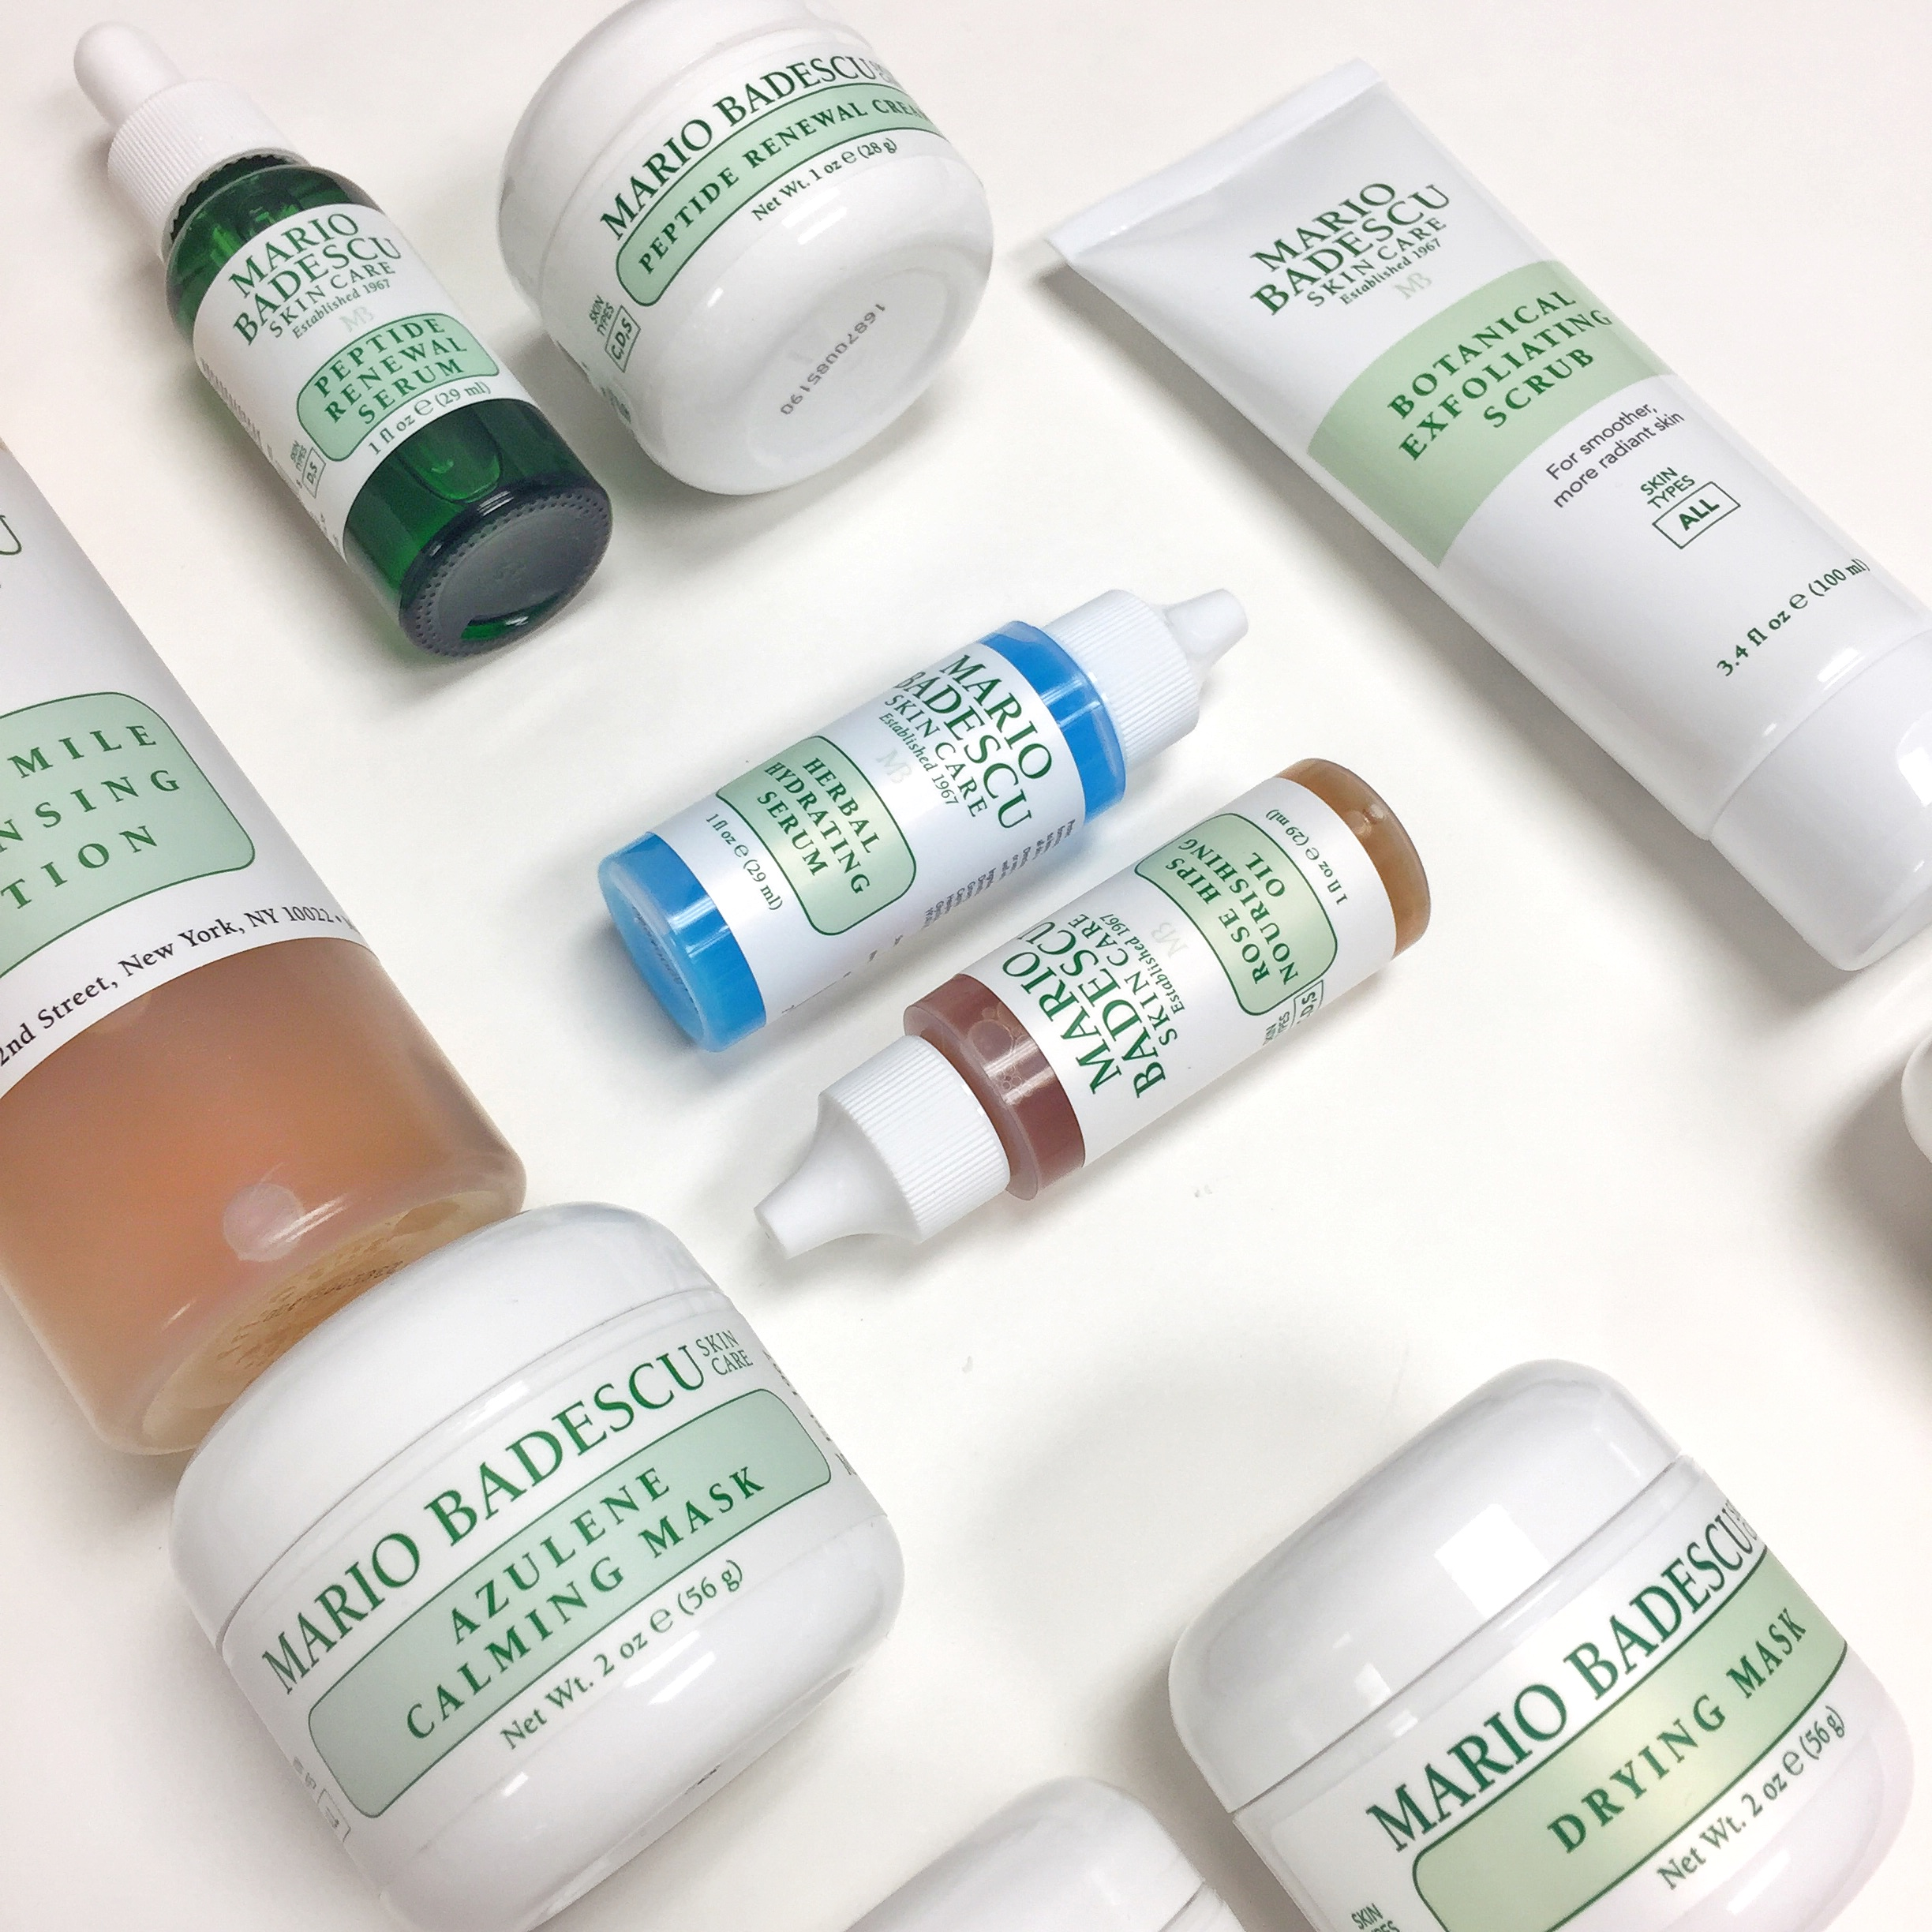 Mario Badescu Power Pairings How to Use Products Together